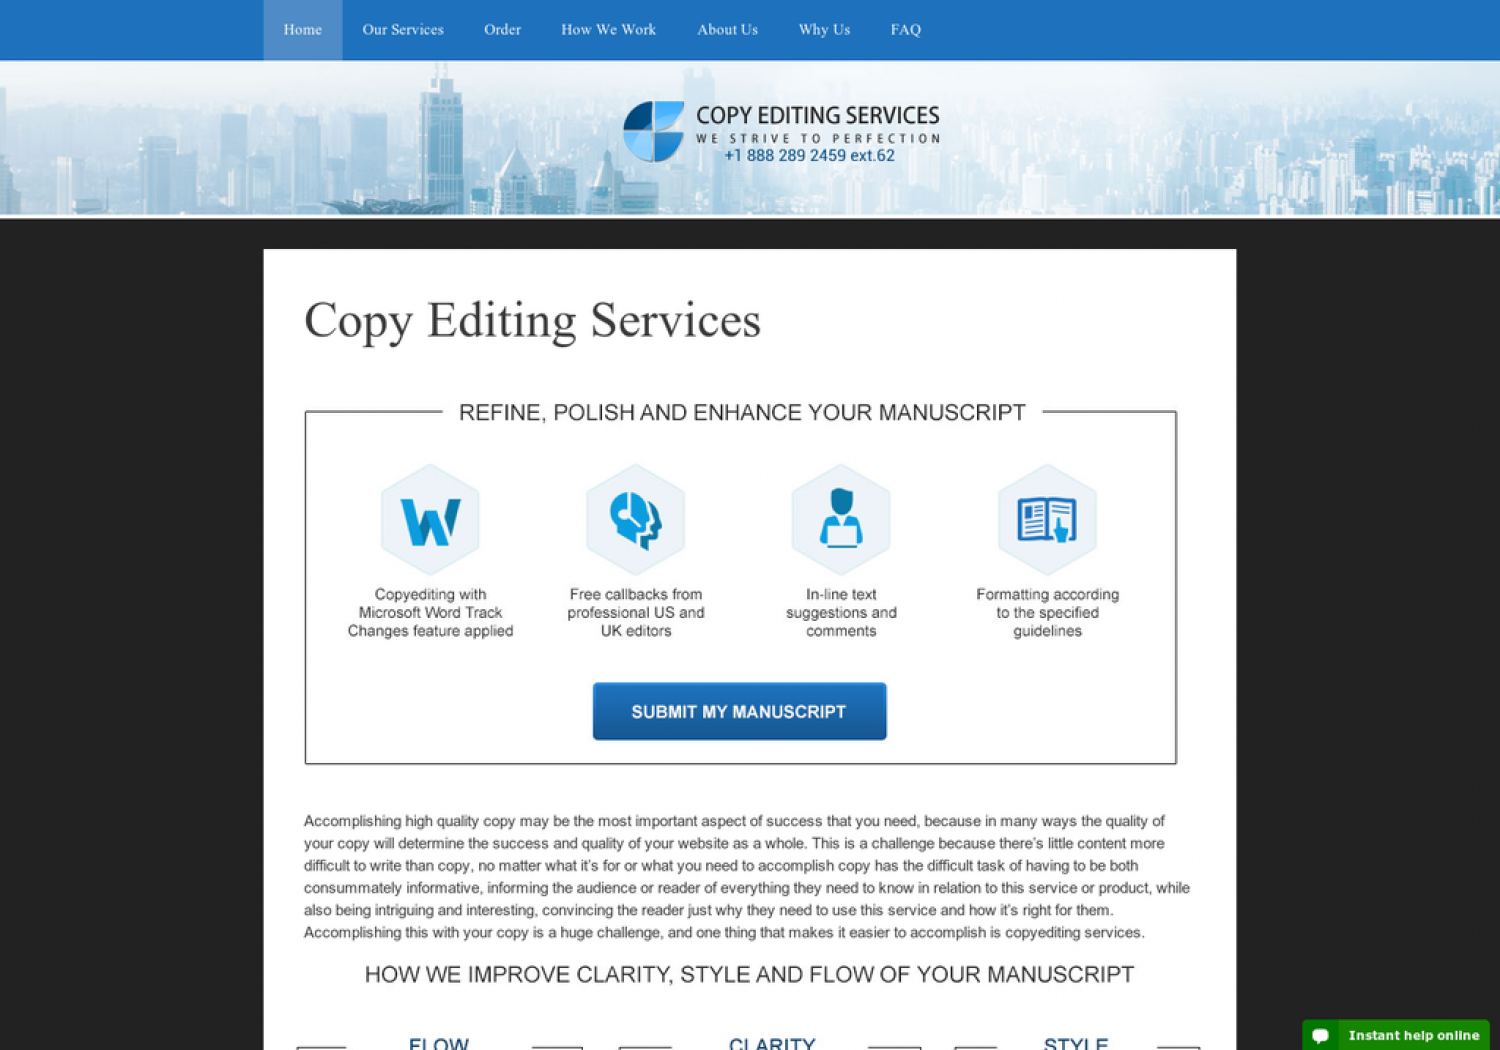 We proofread and copyedit business documents